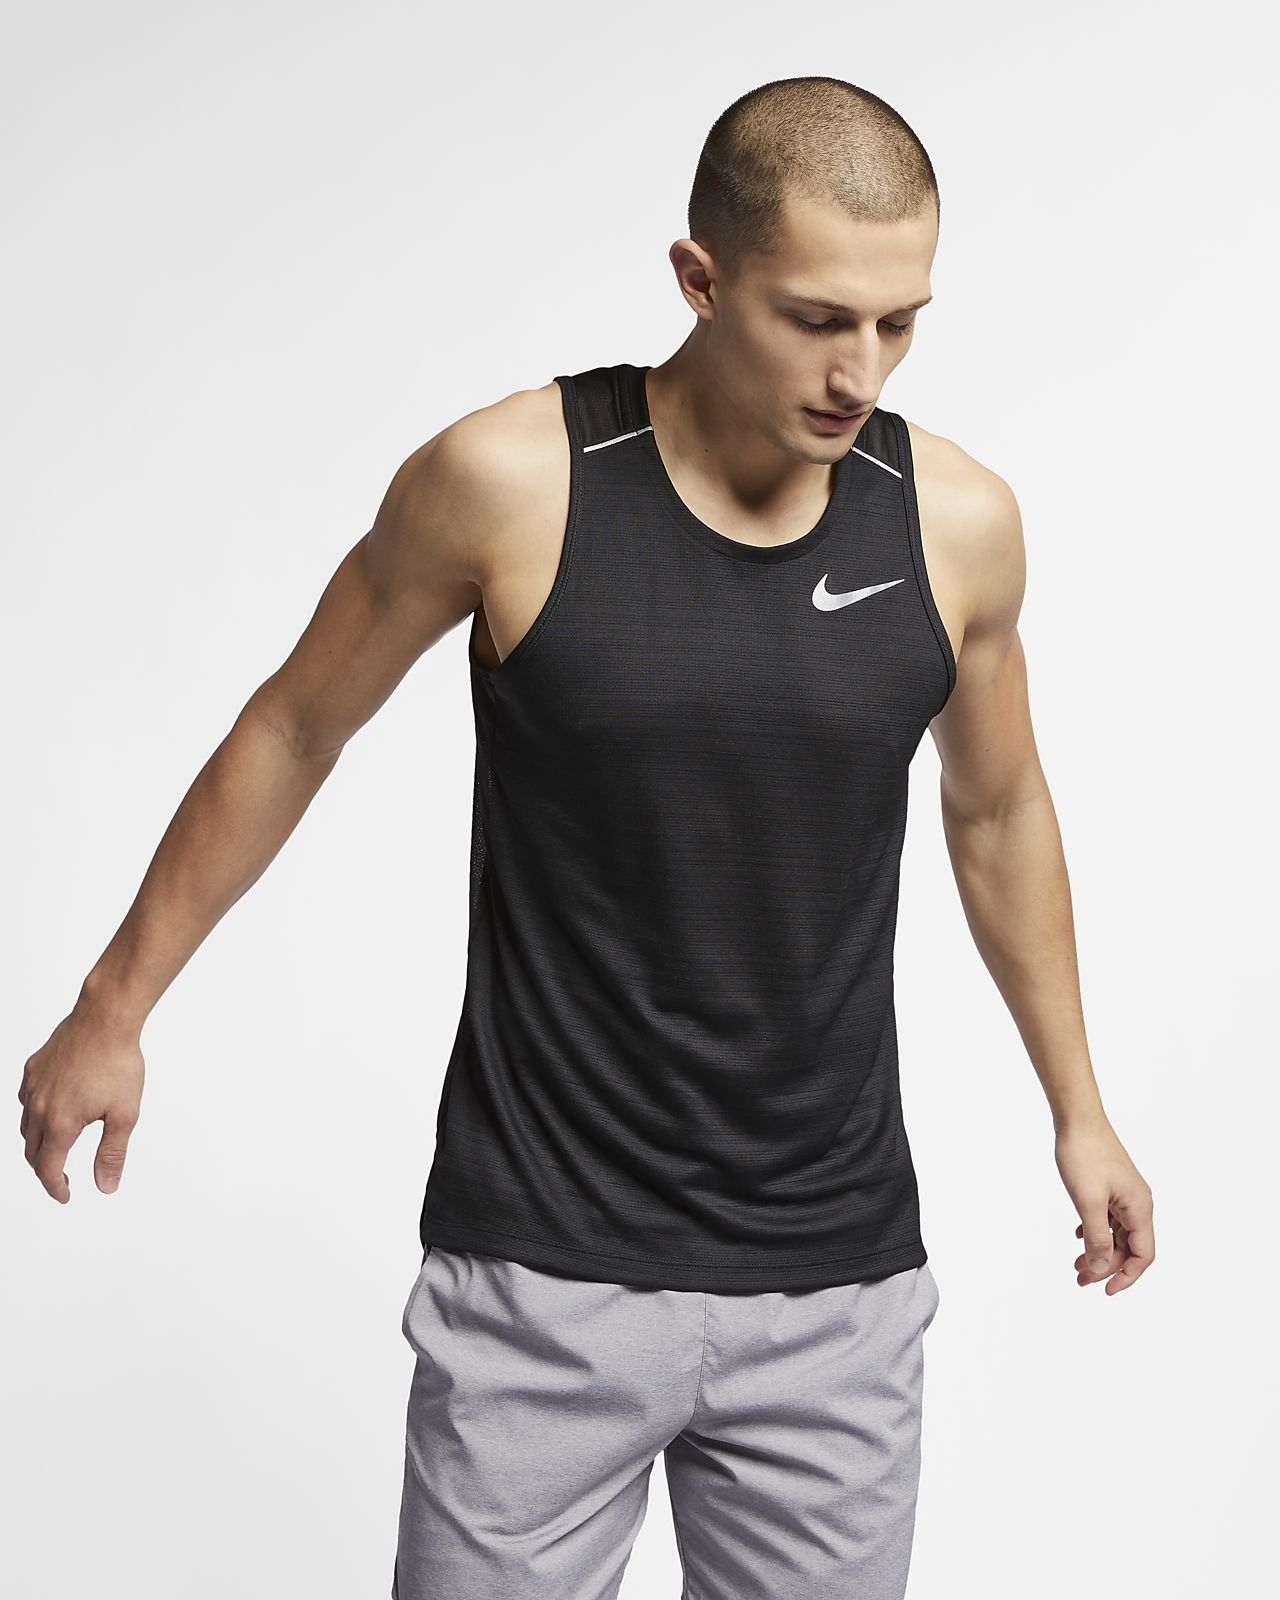 09c09eaab36377 Nike Dri-FIT Miler Men s Running Tank. Nike.com GB